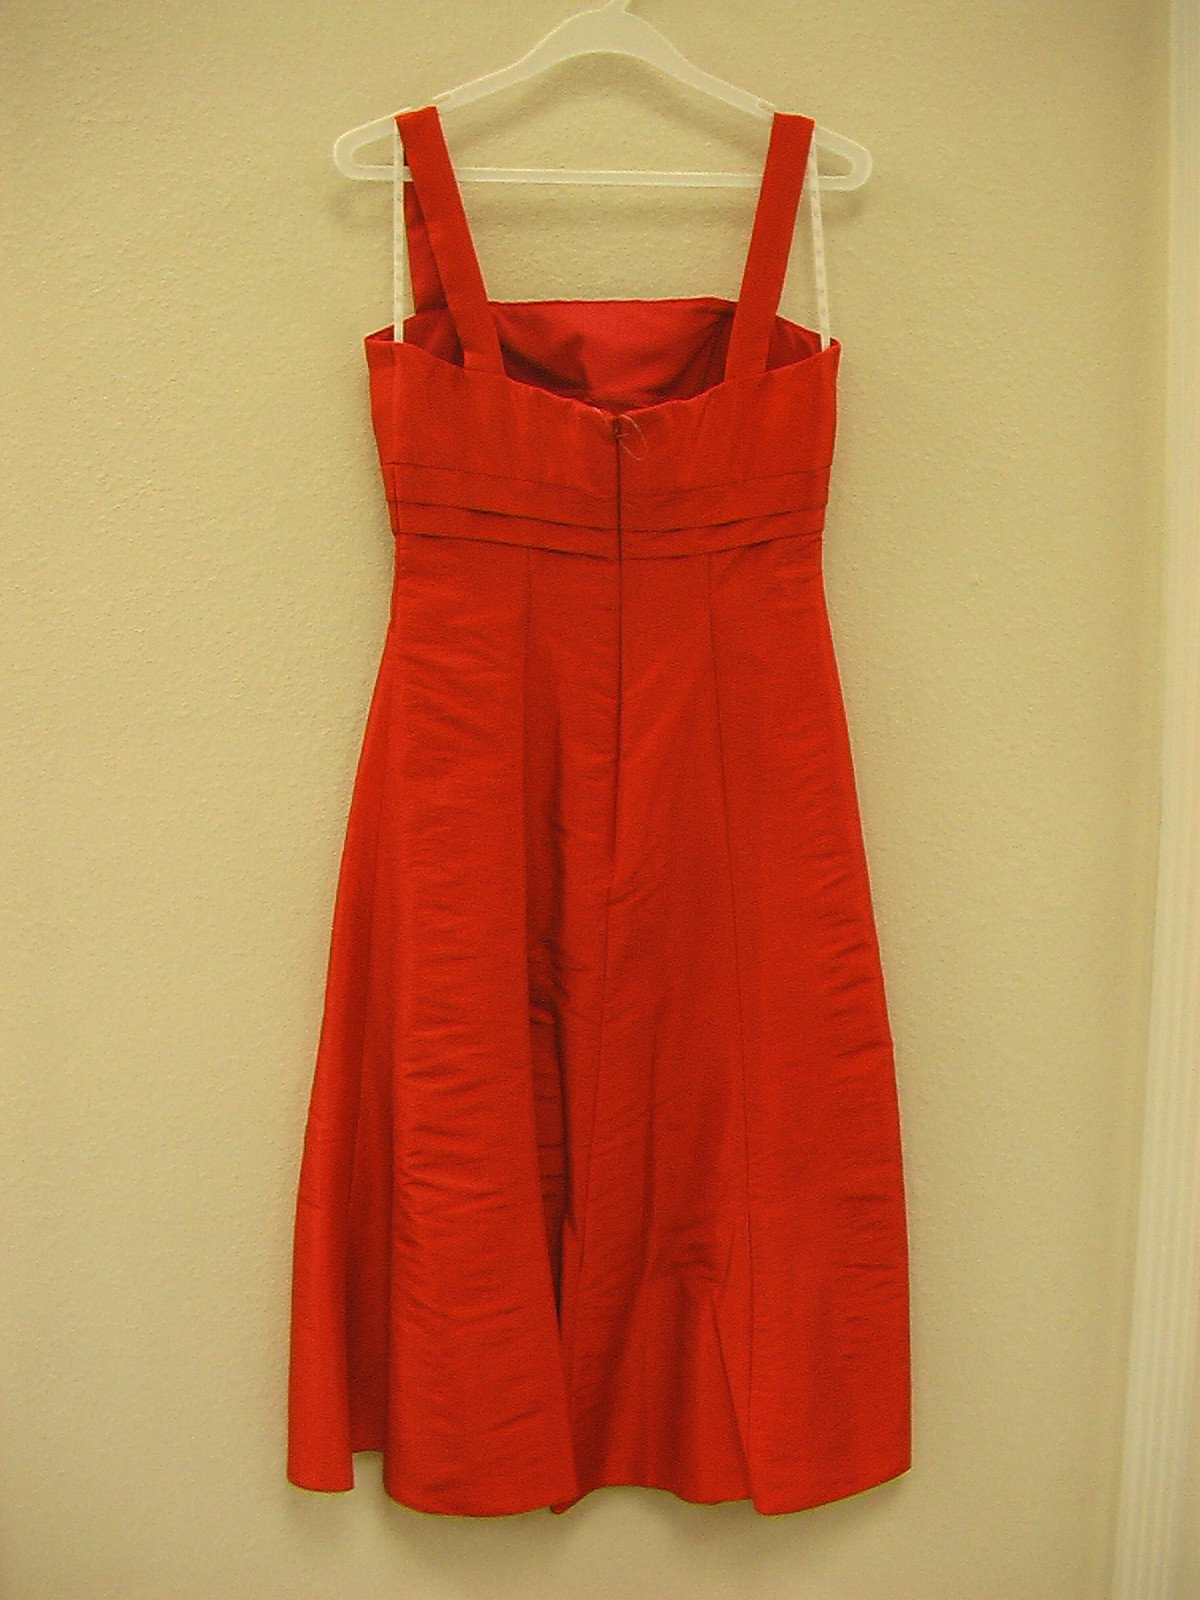 Jasmine B2 B2041 New Red size 28 In Stock Bridesmaid Dress-NEW - Tom's Bridal